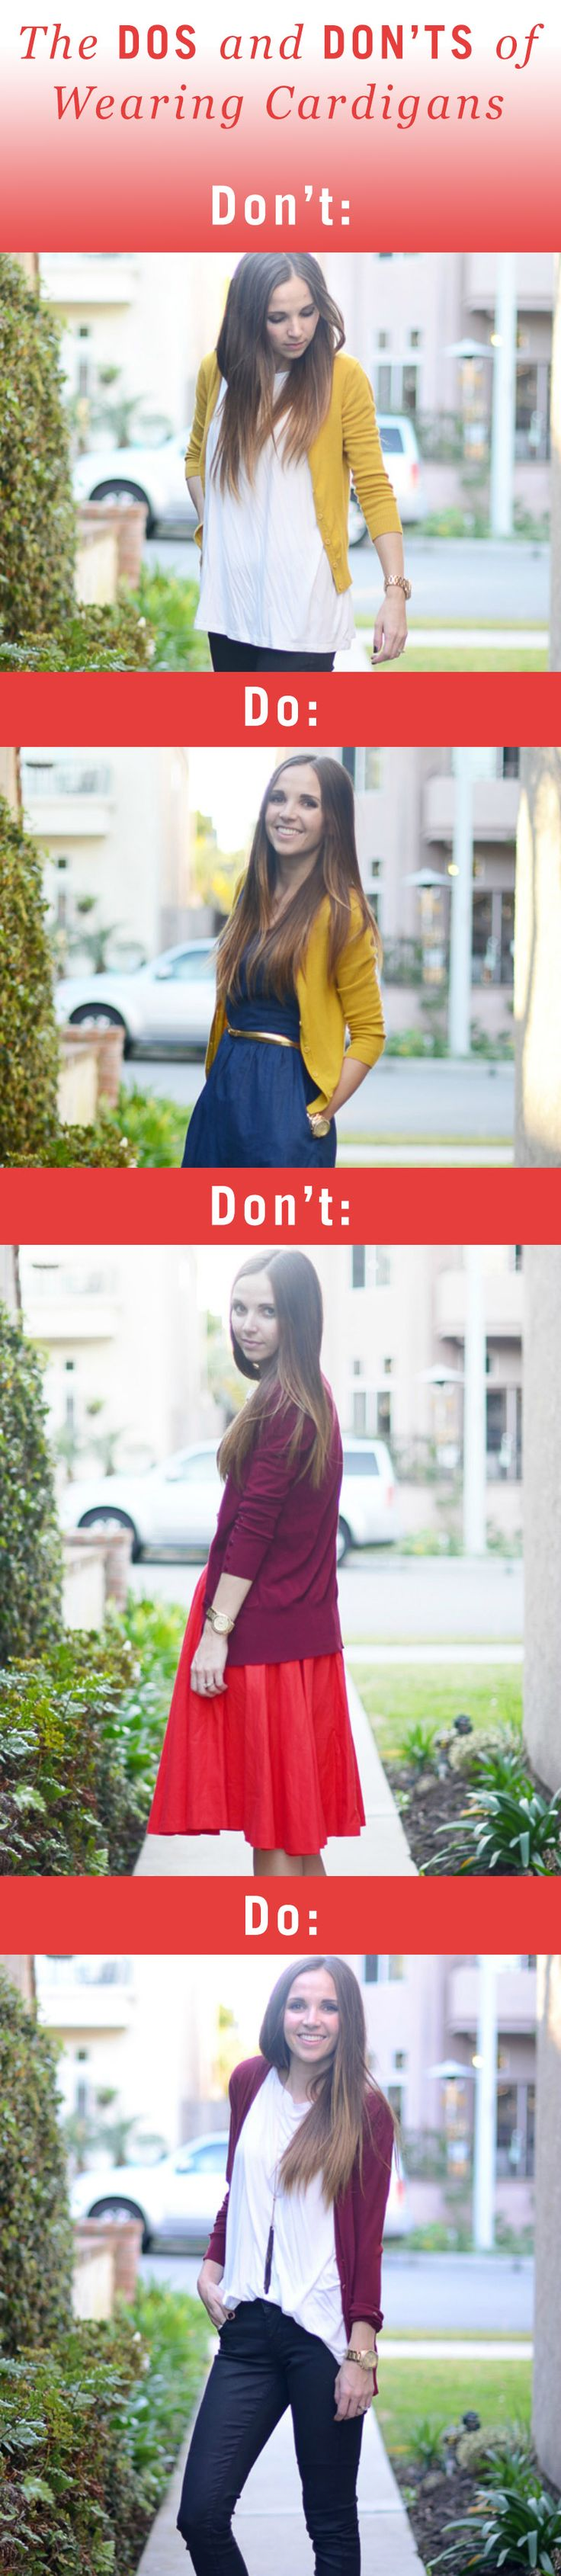 Do's and Don't of wearing a cardigan